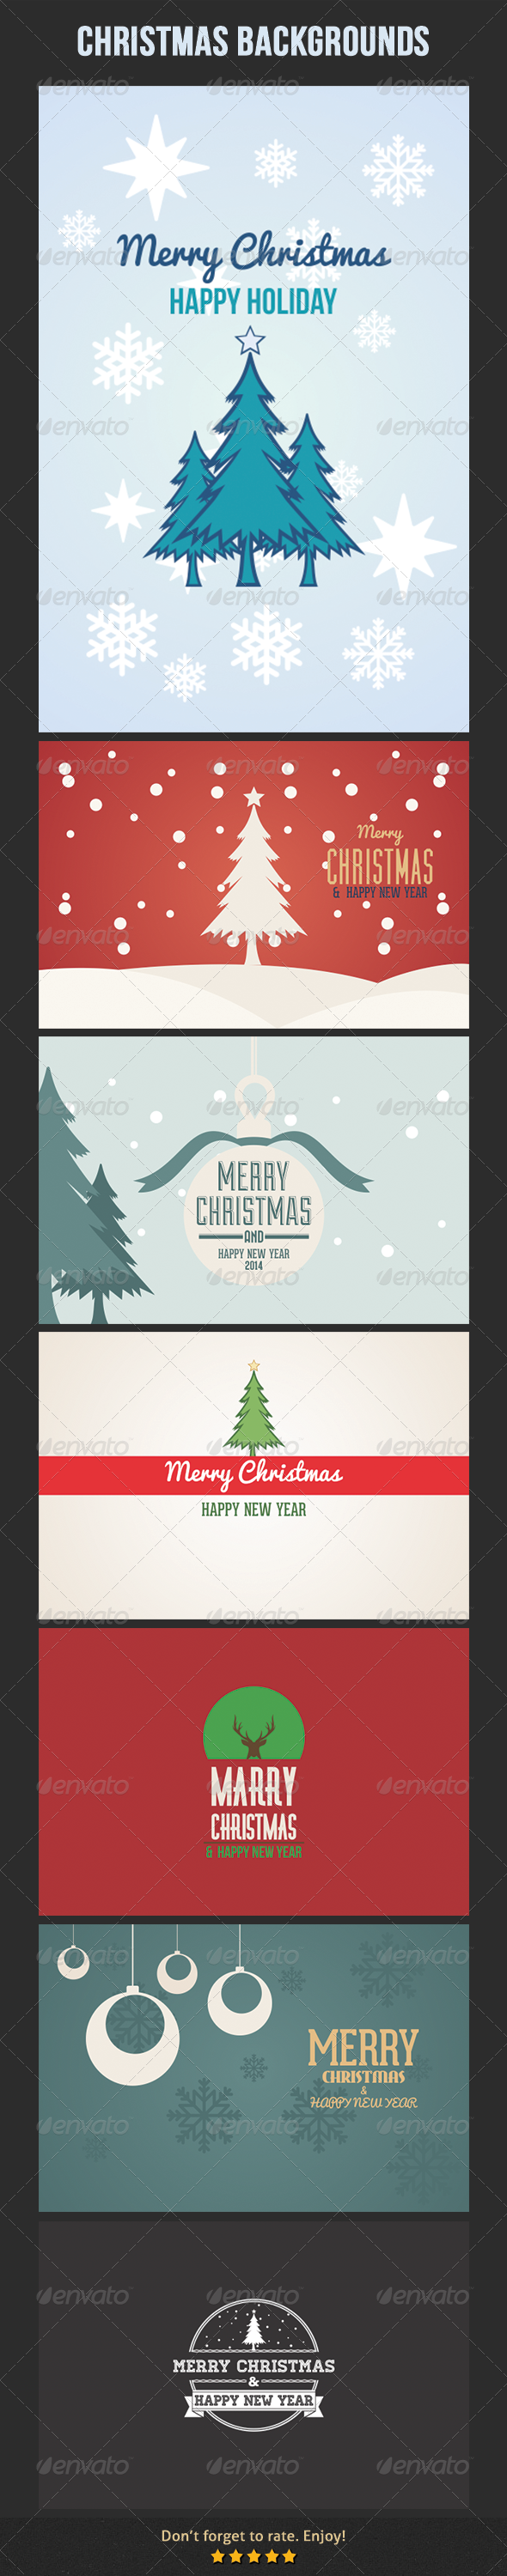 GraphicRiver Christmas Backgrounds 6307860